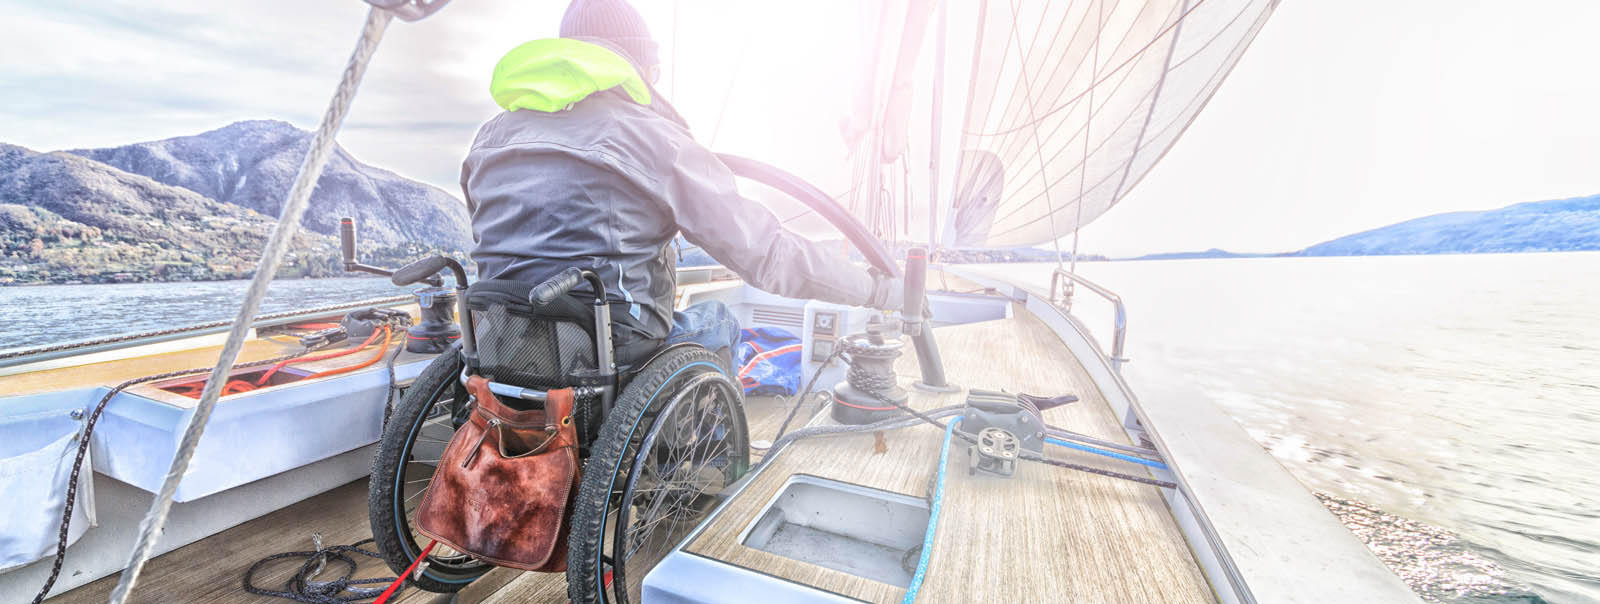 Wheelchair user on a boat